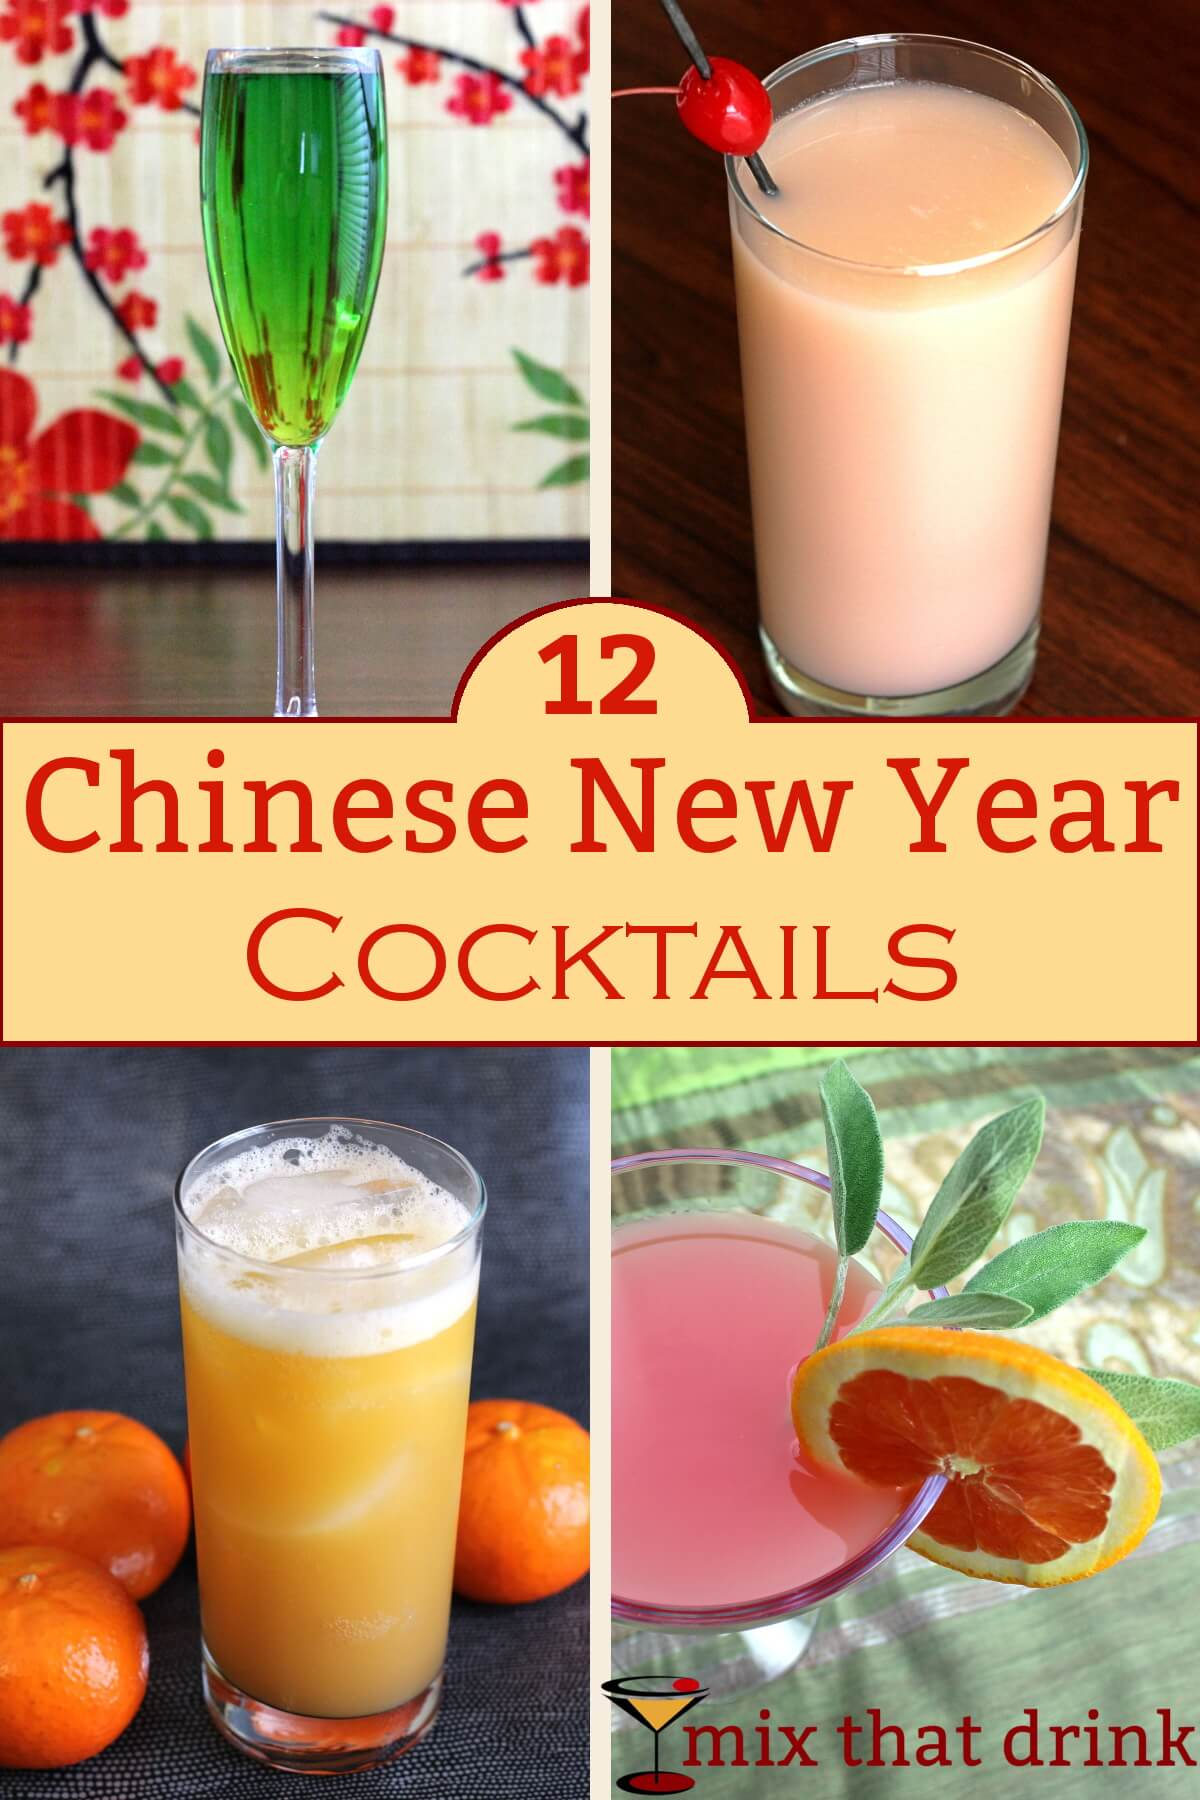 Chinese New Year Drinks - Mix That Drink